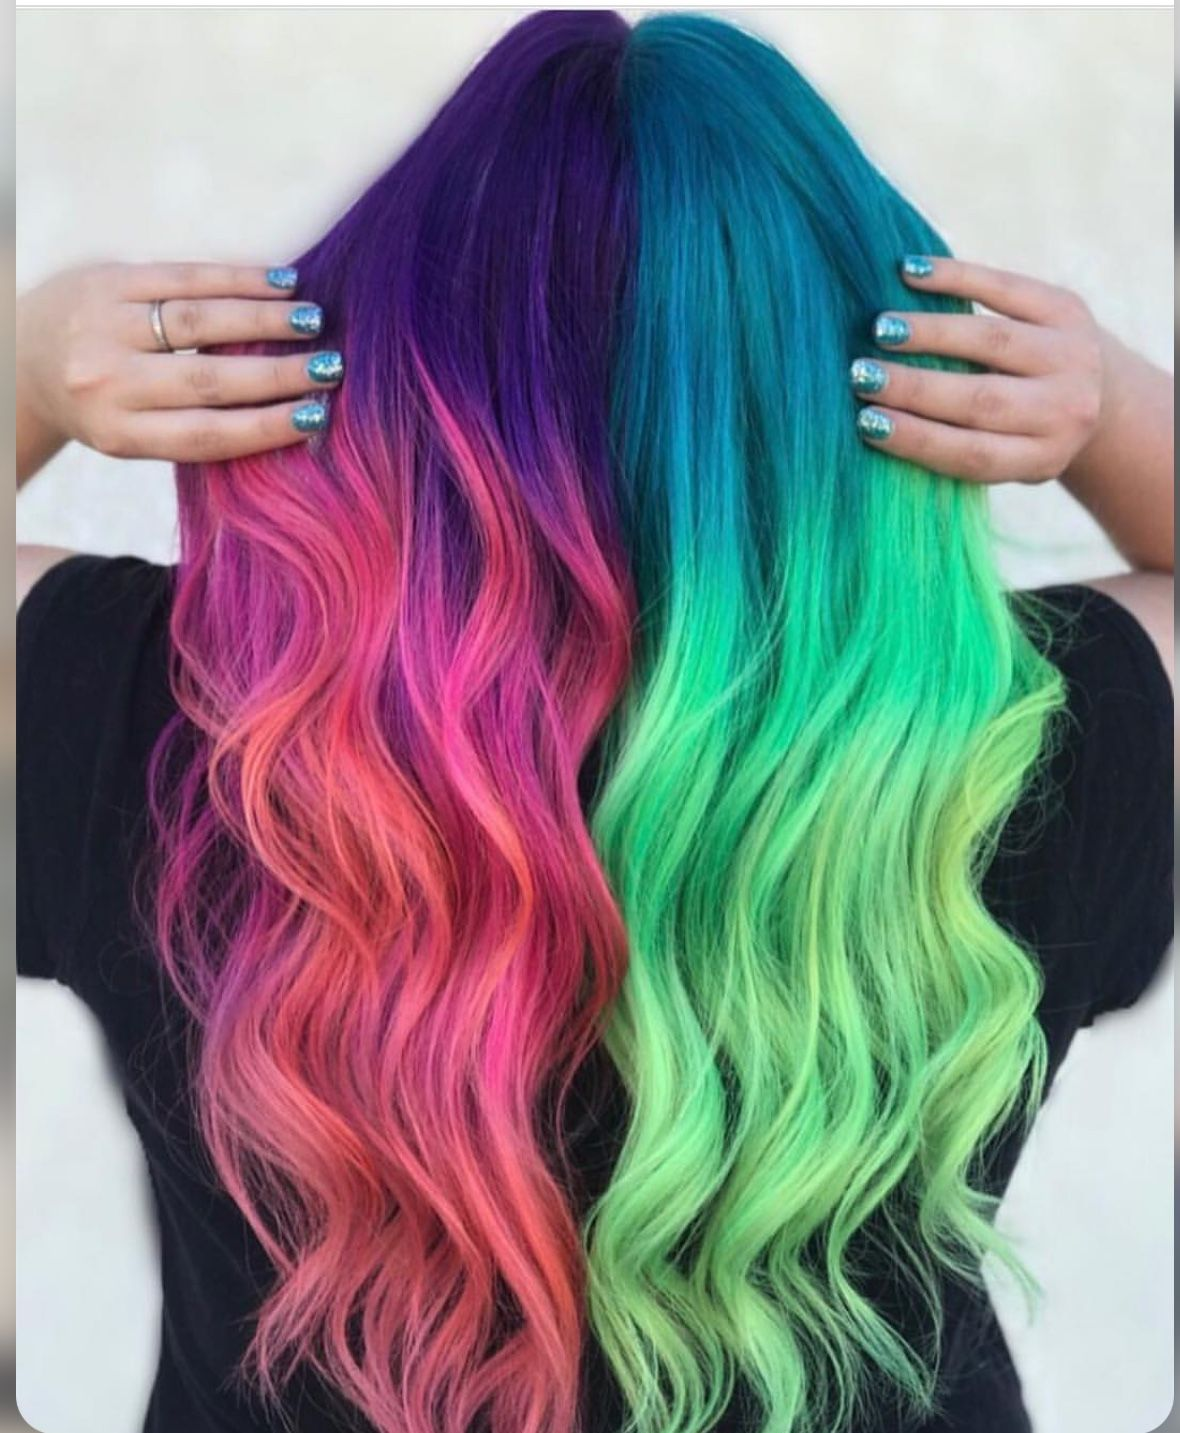 Pin by Janeisha Marie on Colorfull Vivid hair color